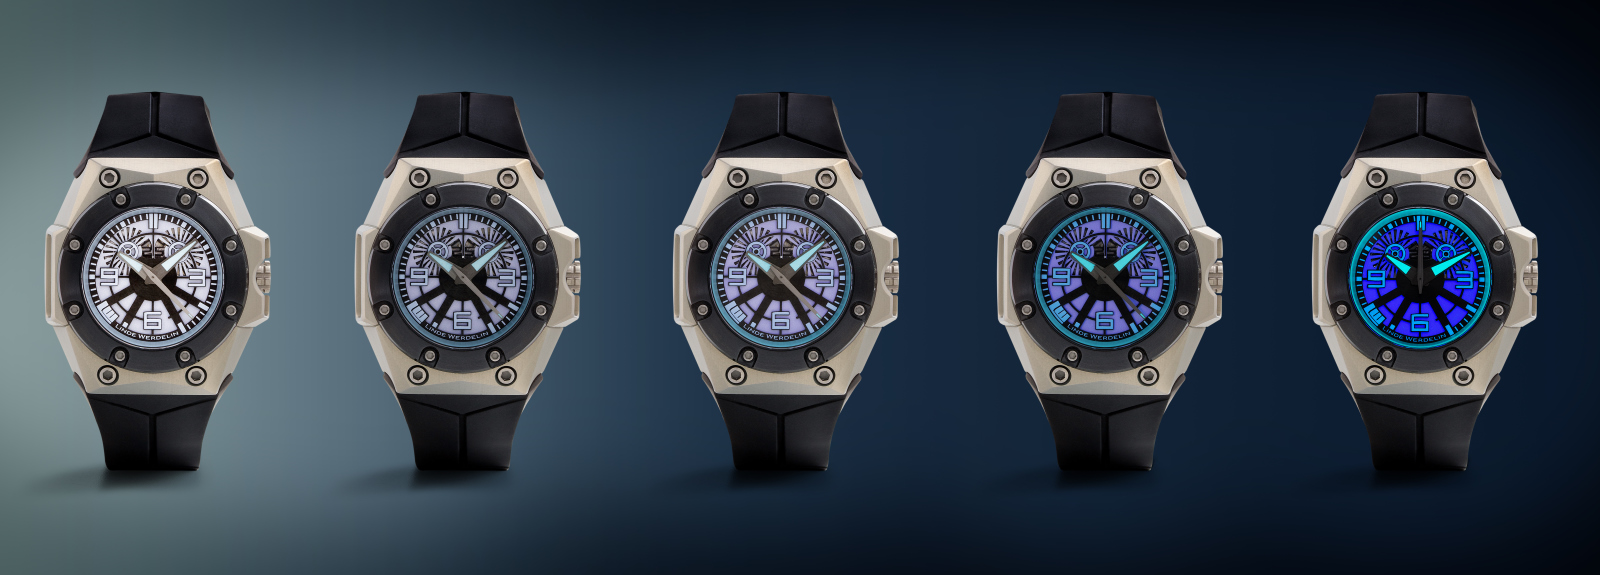 Linde_Werdelin_oktopus_blue_sea_stages_of_lume_-_Europa_Star_watch_magazine_2020